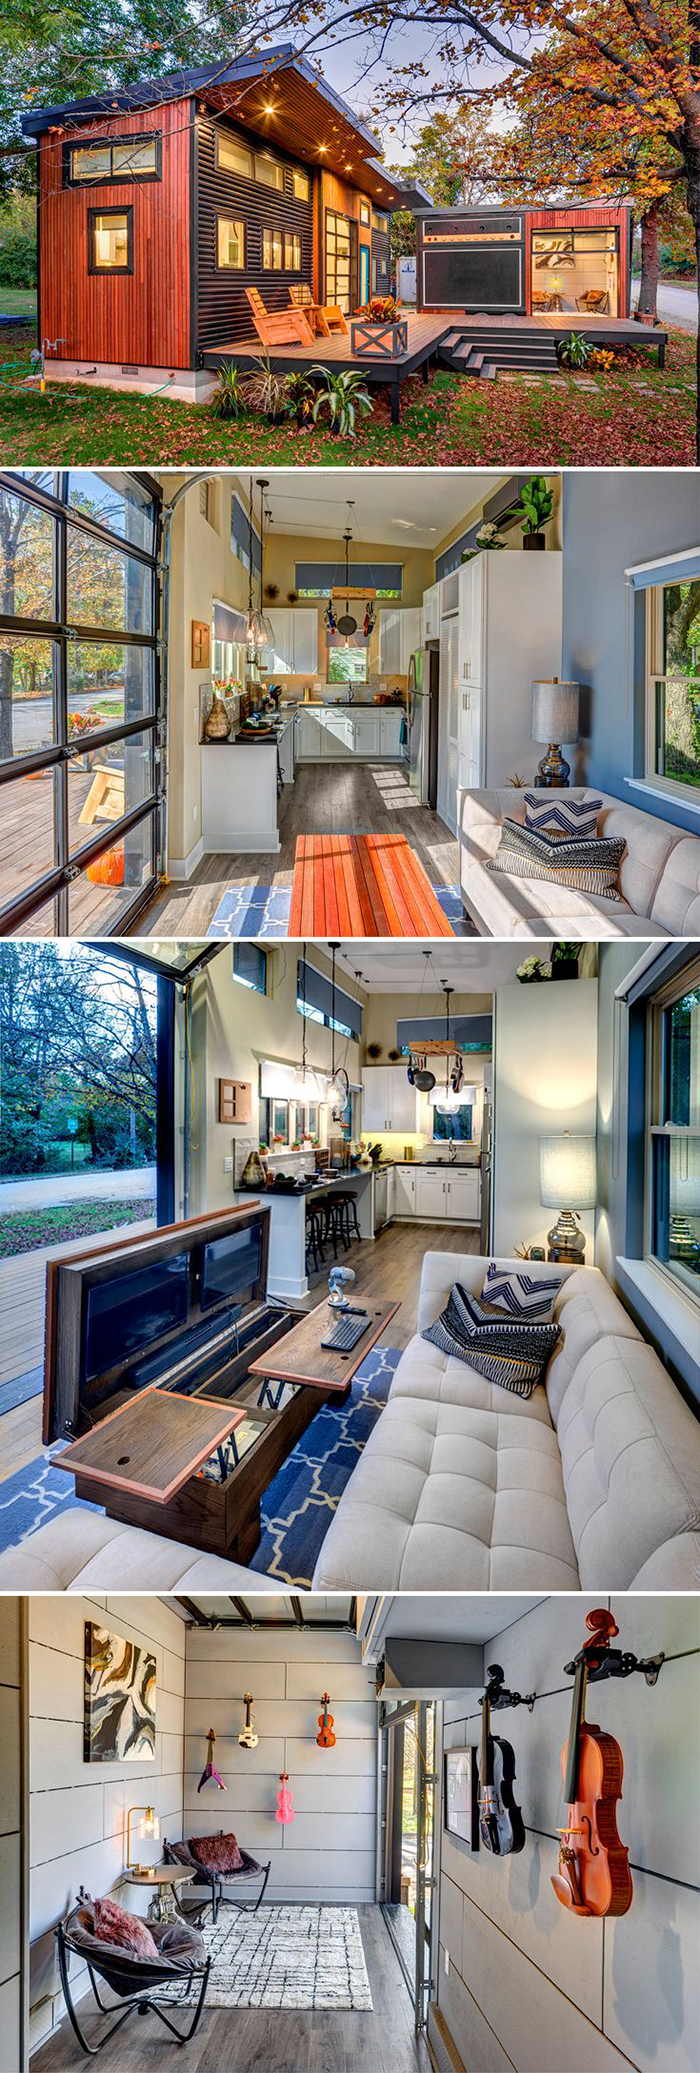 Tiny house interior and outside look